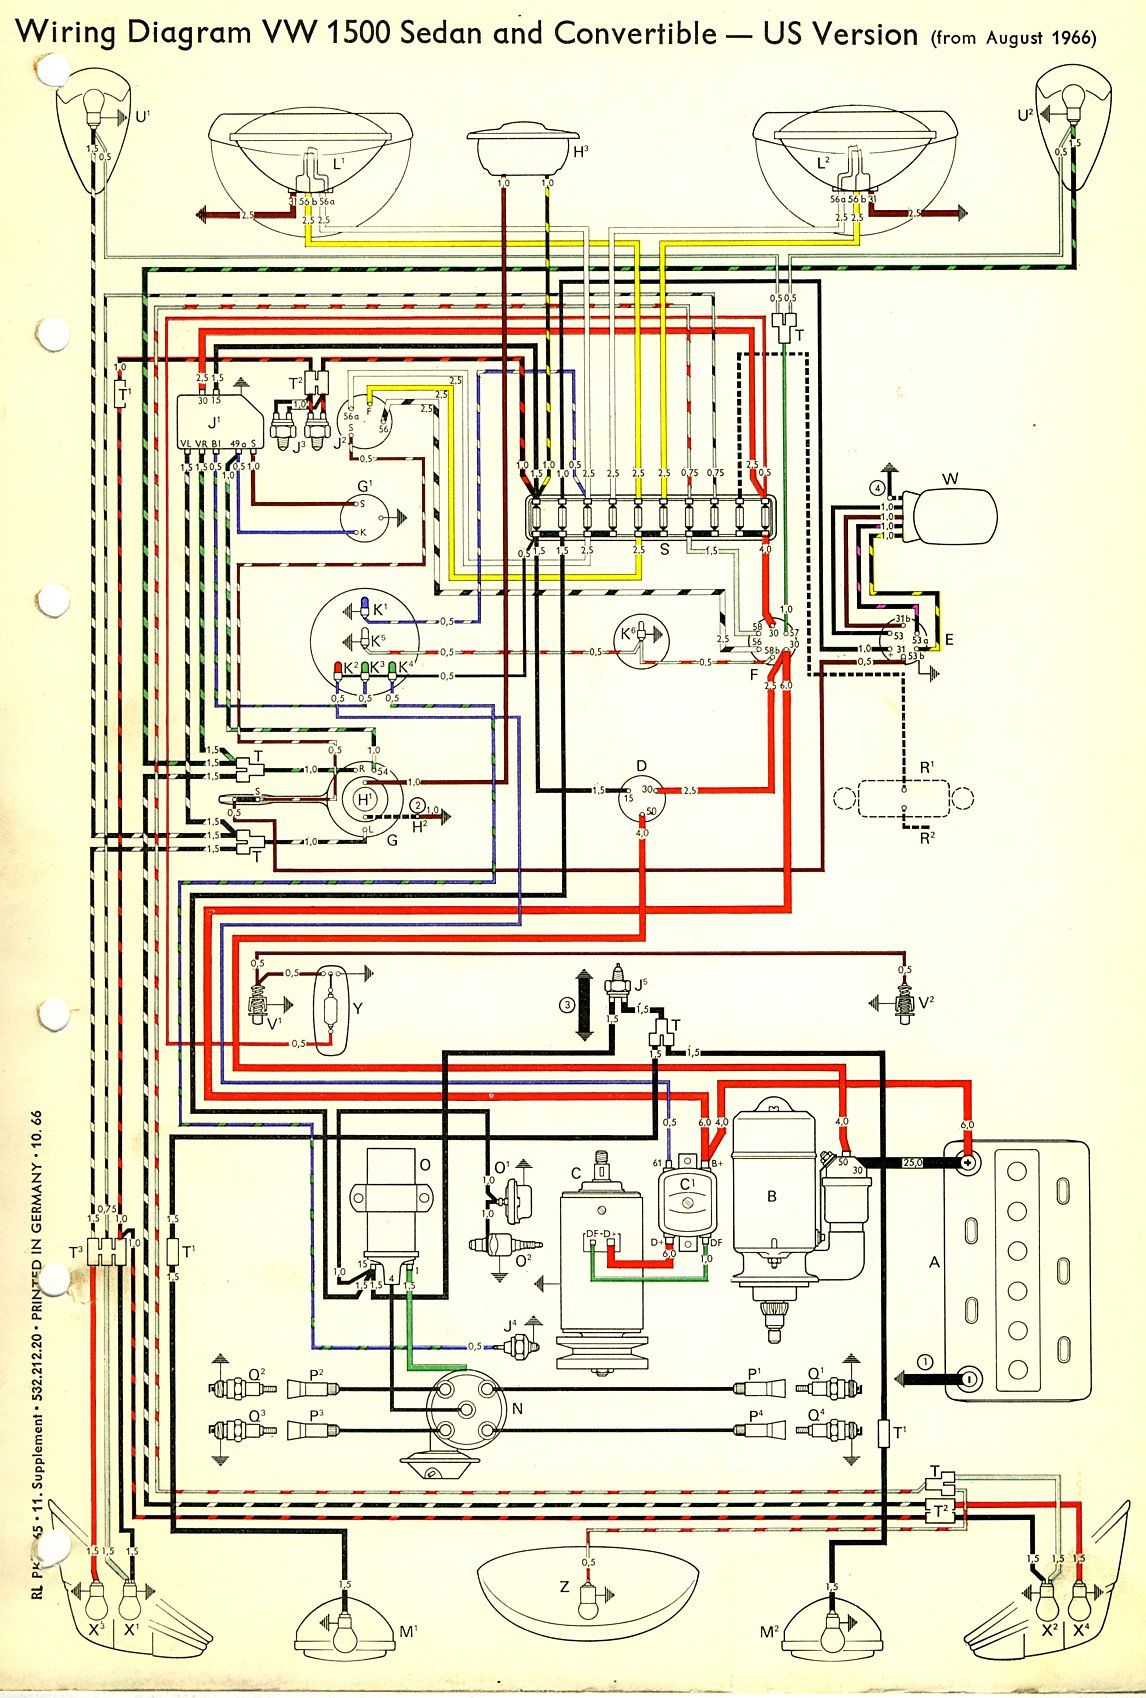 1adf990c0efb617c789fdd21338448b0 1967 beetle wiring diagram (usa) thegoldenbug com best 1967 vw 1971 vw beetle wiring diagram at panicattacktreatment.co